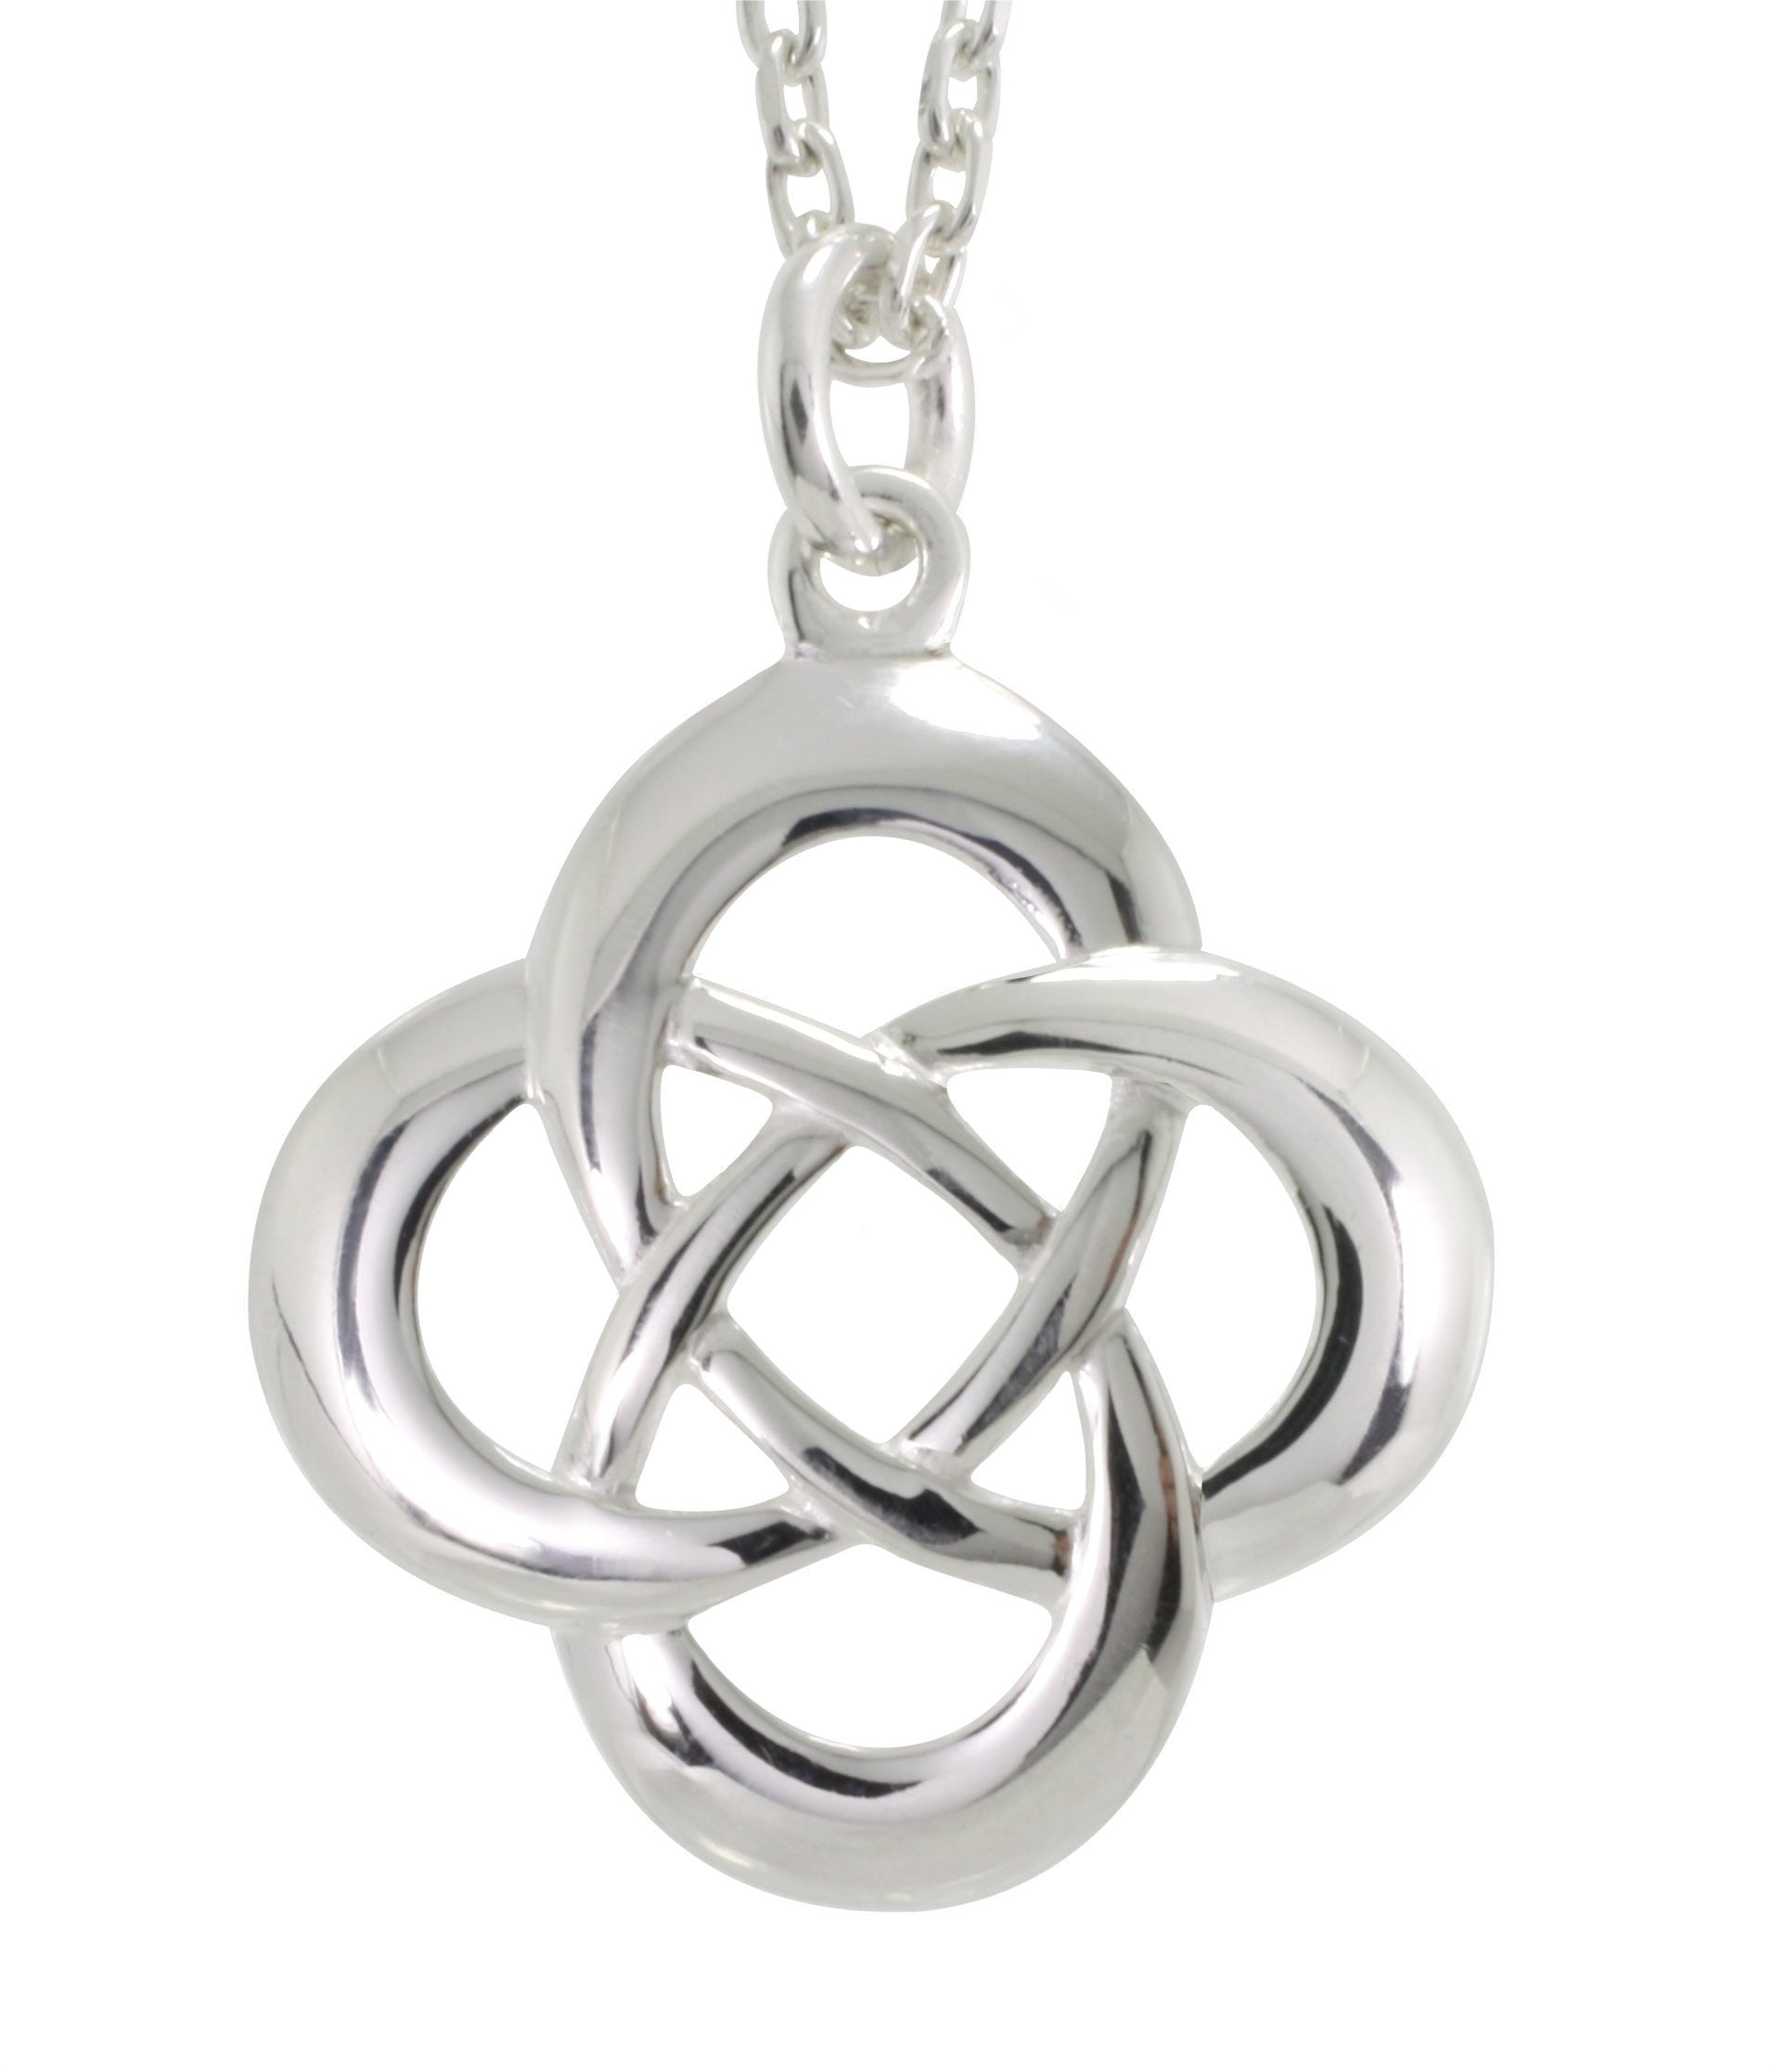 silver shipping knot necklace eternal inch celtic overstock product free pendant over on cgc watches jewelry orders